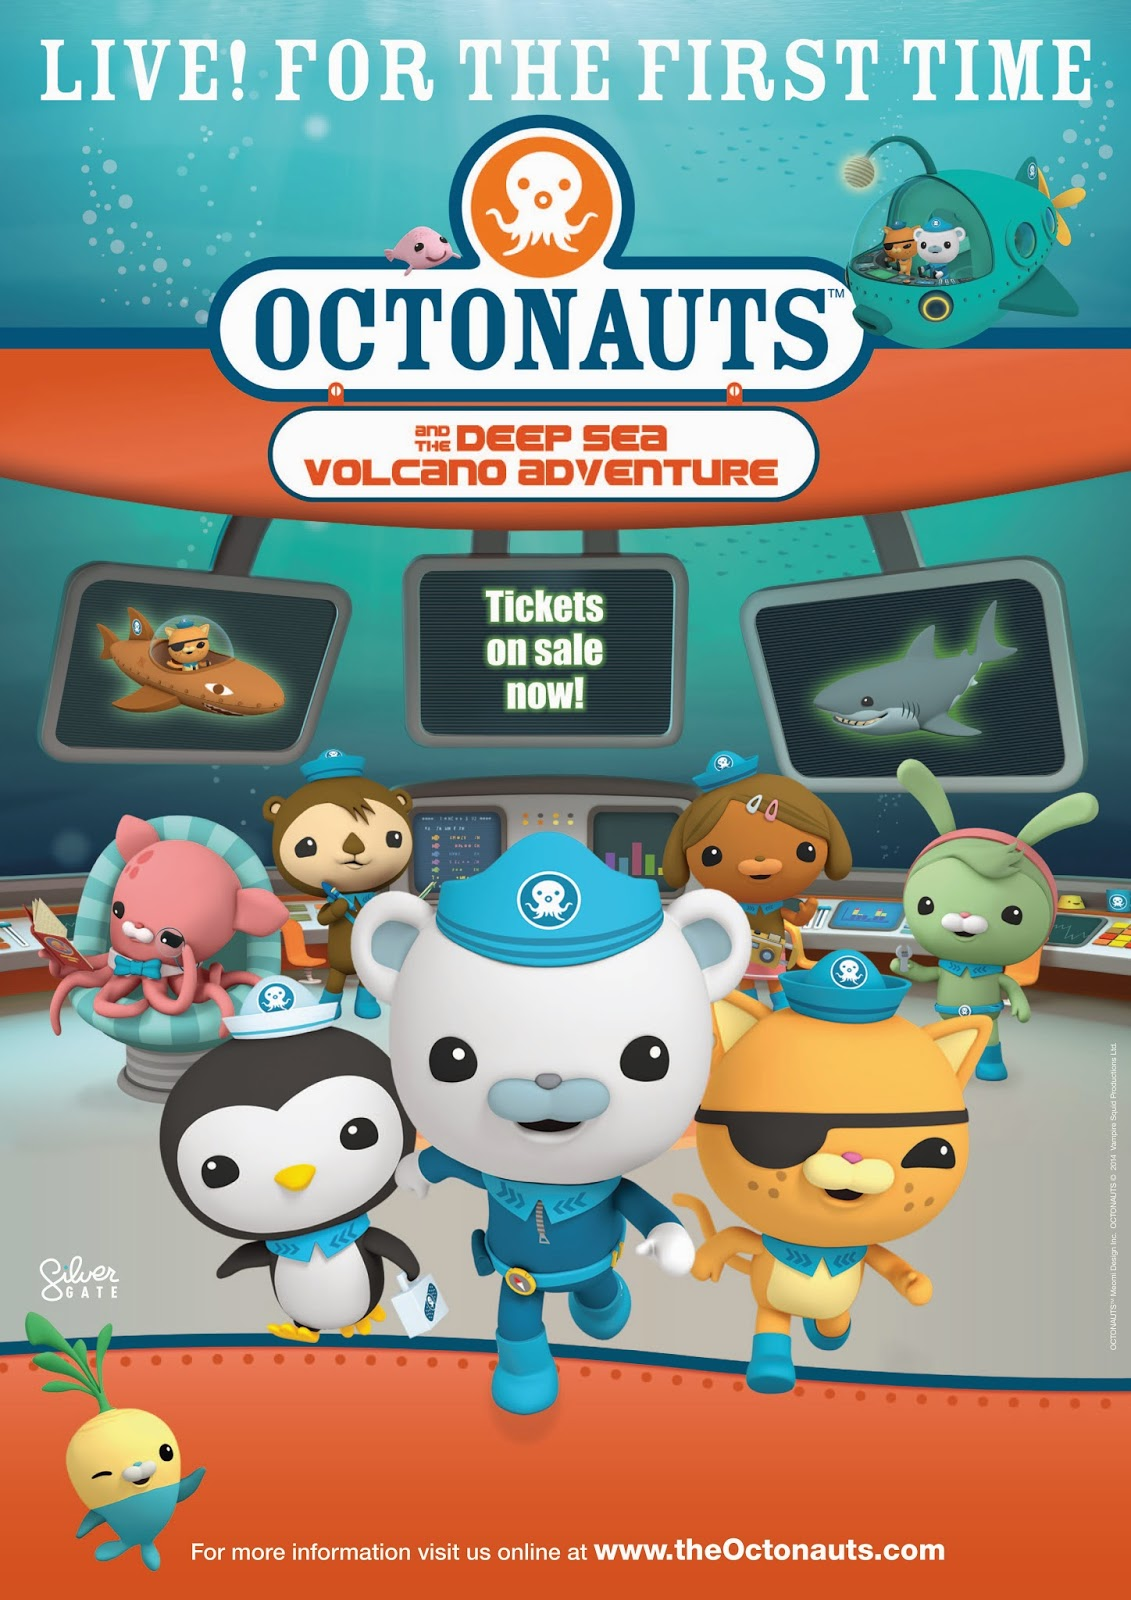 Octonauts 2014, Octonauts Live Show, Octonauts and th Deep Sea Volcano Adventure Live Ticket Giveaway